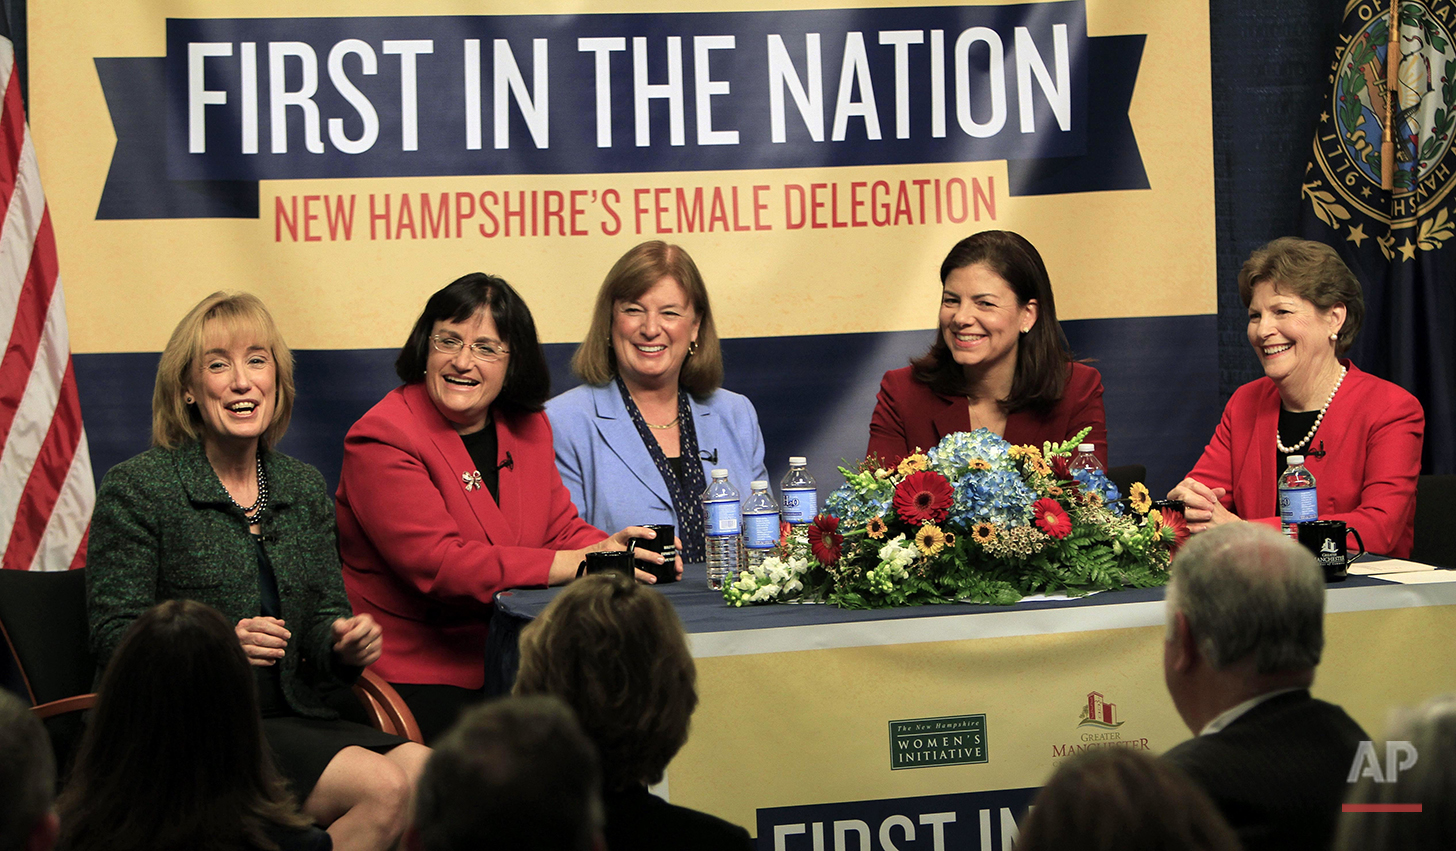 In this Friday Dec. 7, 2012, photo, the five women holding New Hampshire's top political offices, from left, Gov. Maggie Hassan, D-N.H., U.S. Rep. Ann McLane Kuster, D-N.H., Carol Shea-Porter, D-N.H., U.S. Sen. Kelly Ayotte, R-N.H., and U.S. Sen. Jeanne Shaheen, D-N.H., discuss what their lives are like as female politicians at the Institute of Politics at Saint Anselm College in Manchester, N.H. All three northern New England states do better than the national average in electing women to their state Legislatures. (AP Photo/Jim Cole)